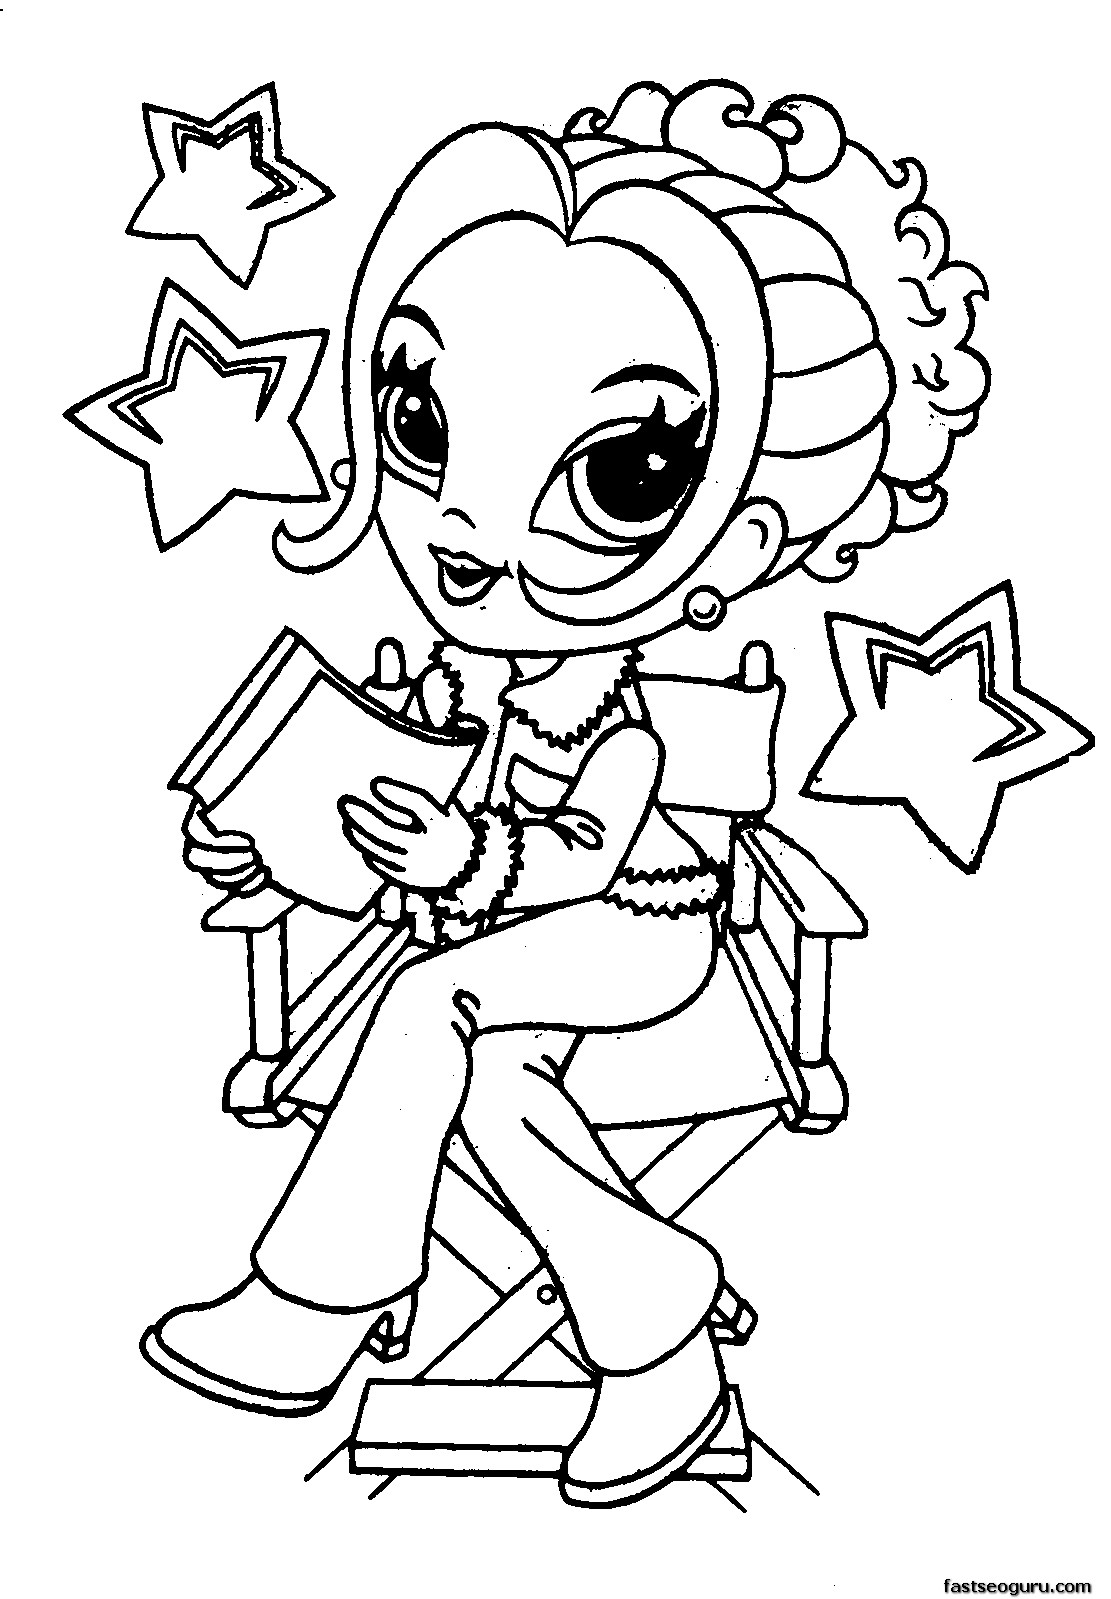 coloring pages for girls designs free printable coloring pages for teenage girls coloring for girls coloring pages designs